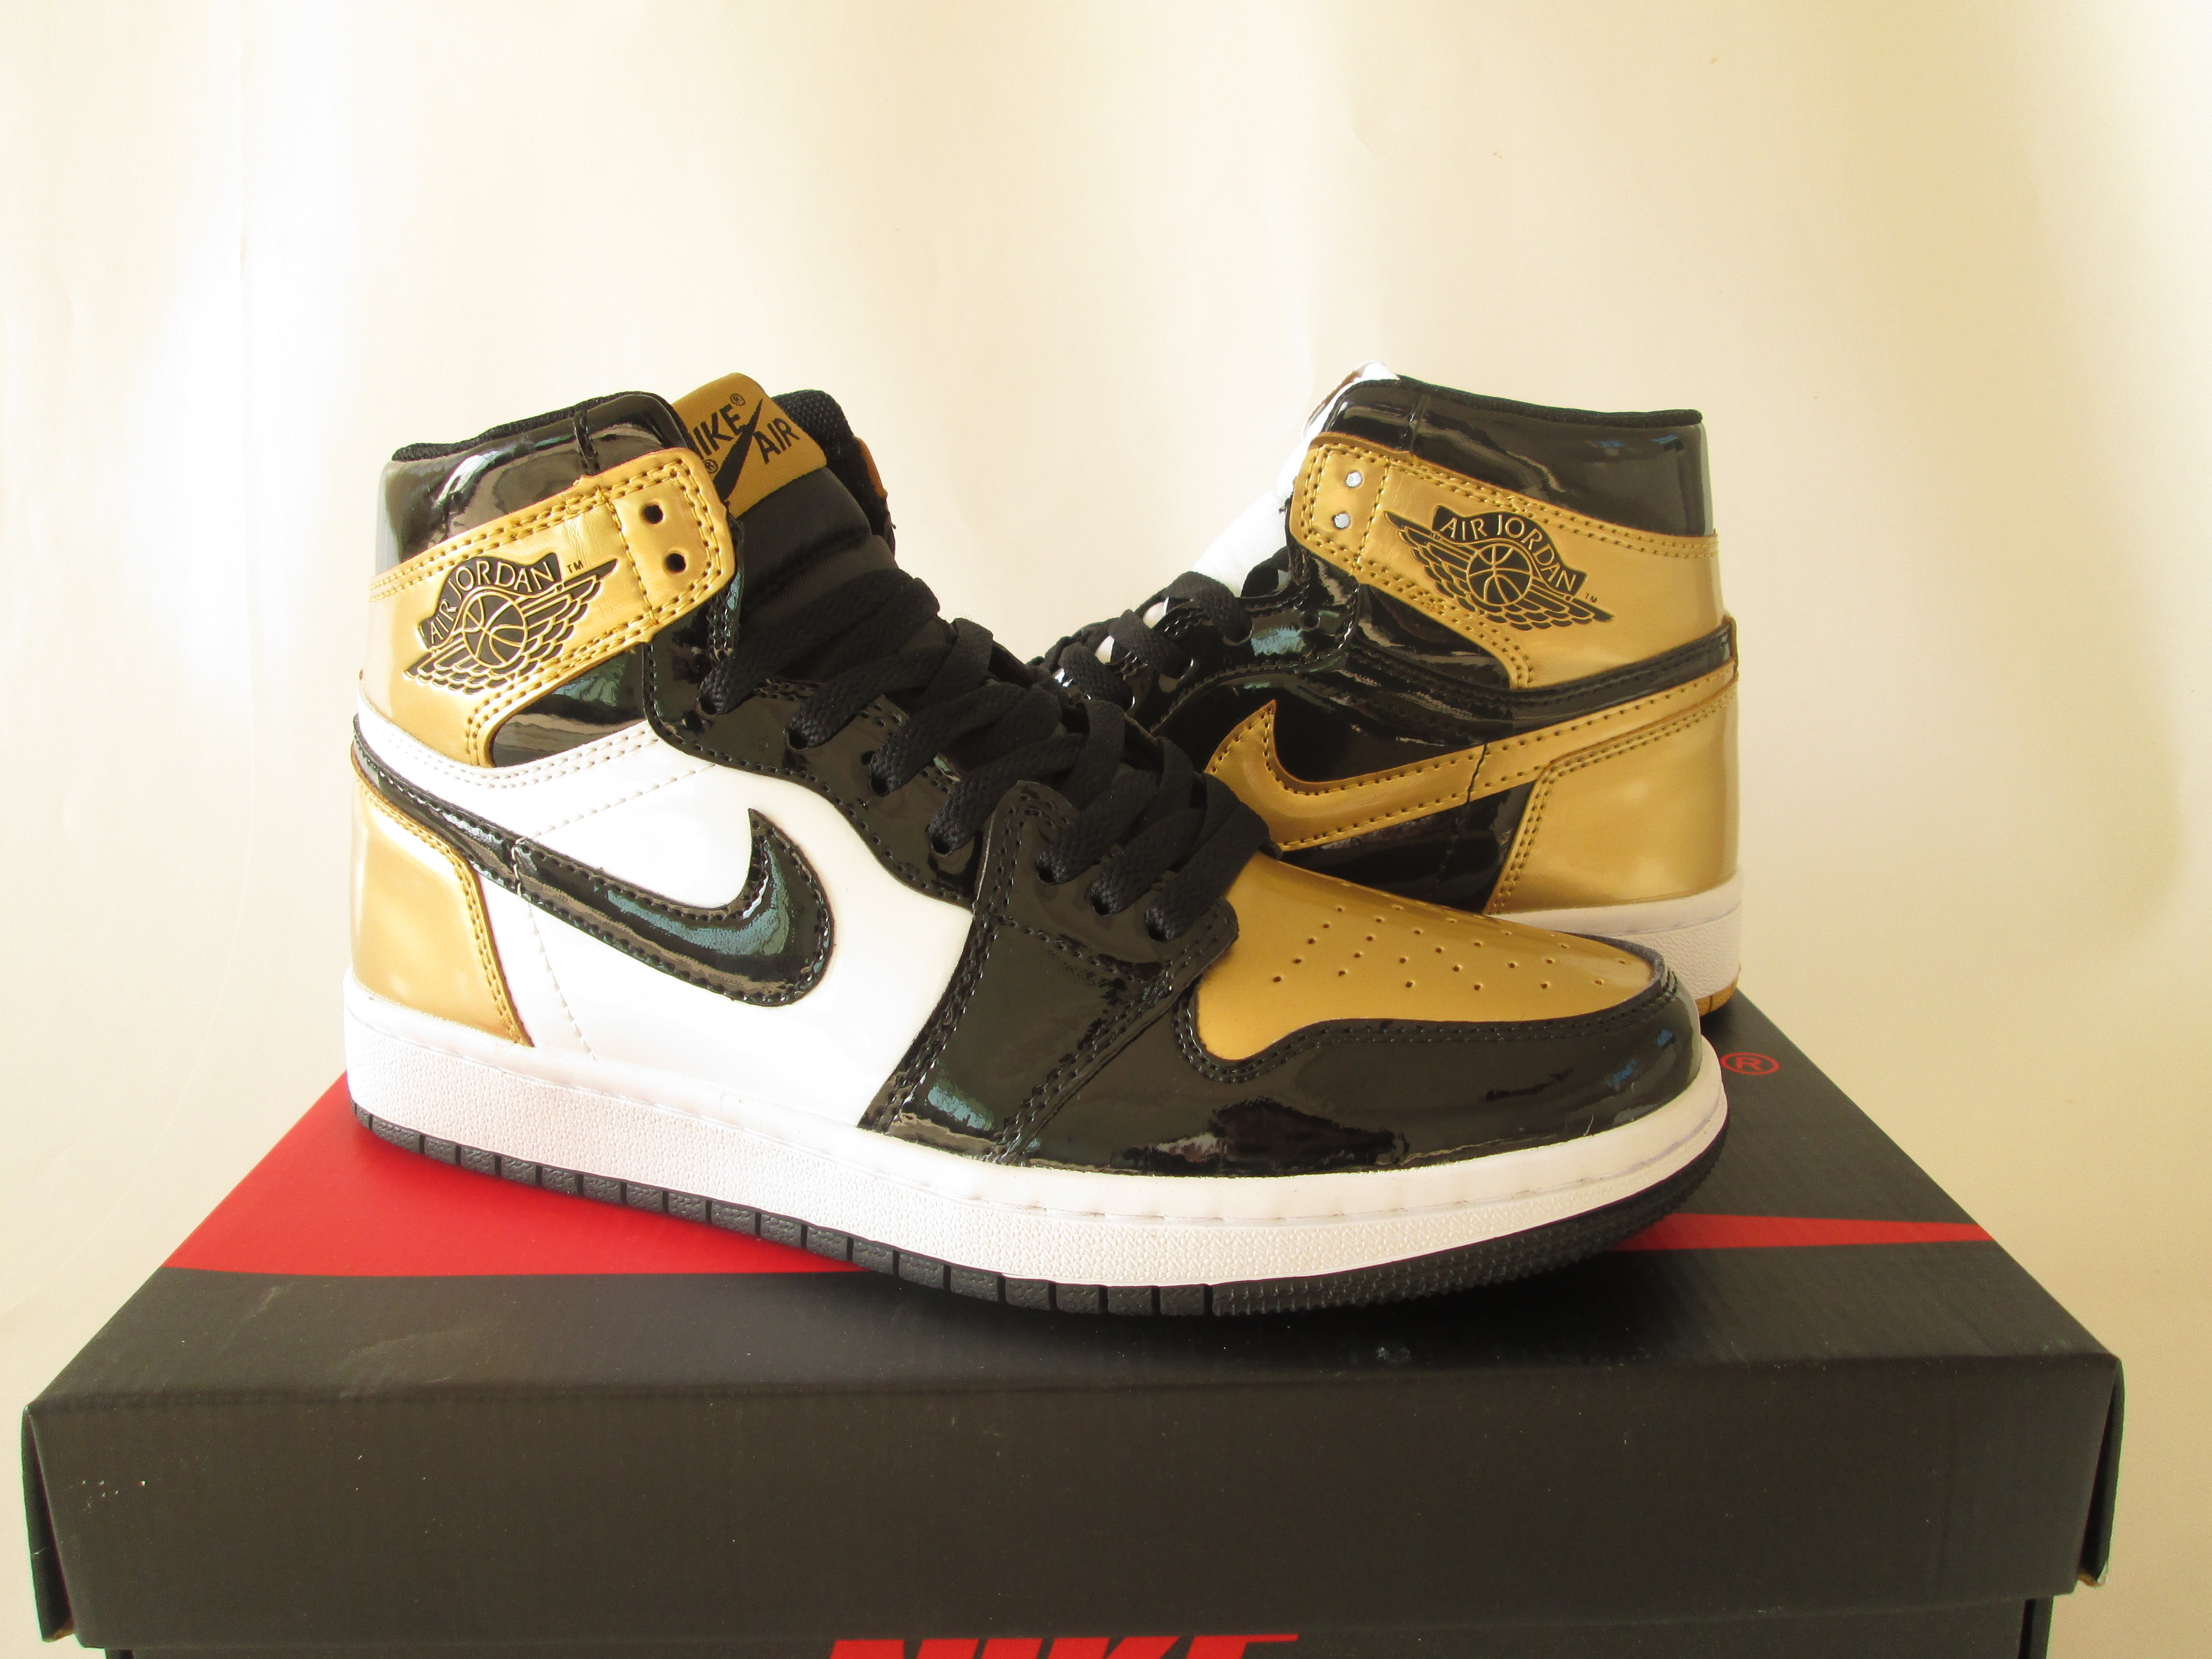 What The Jordan of Air Jordan 1 Black Gold White Shoes